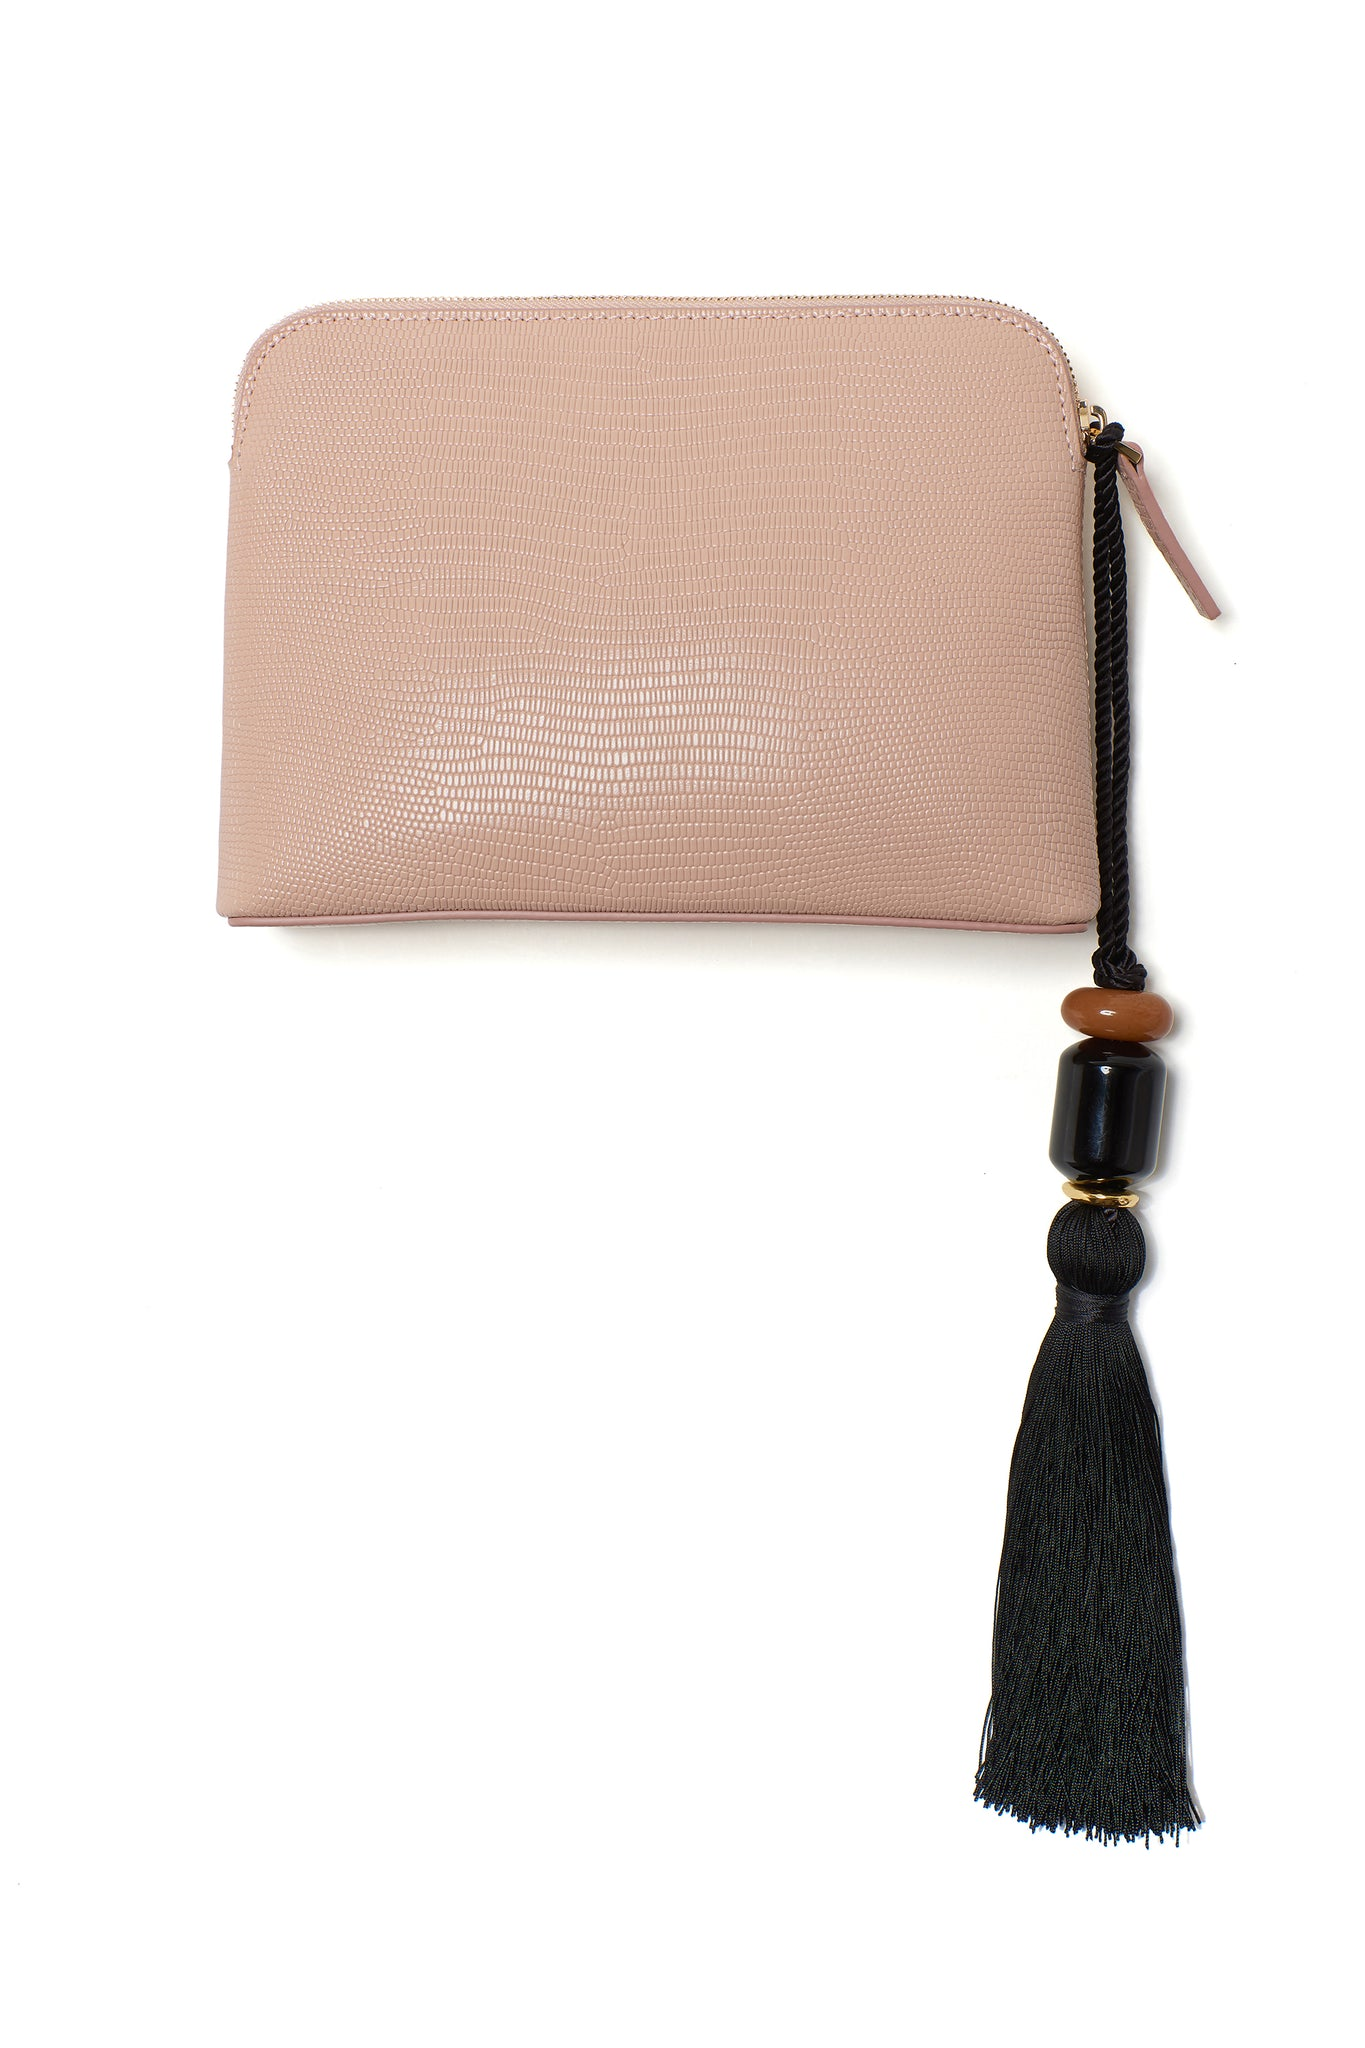 Lizzie Fortunato - mini safari clutch in lizard, blush